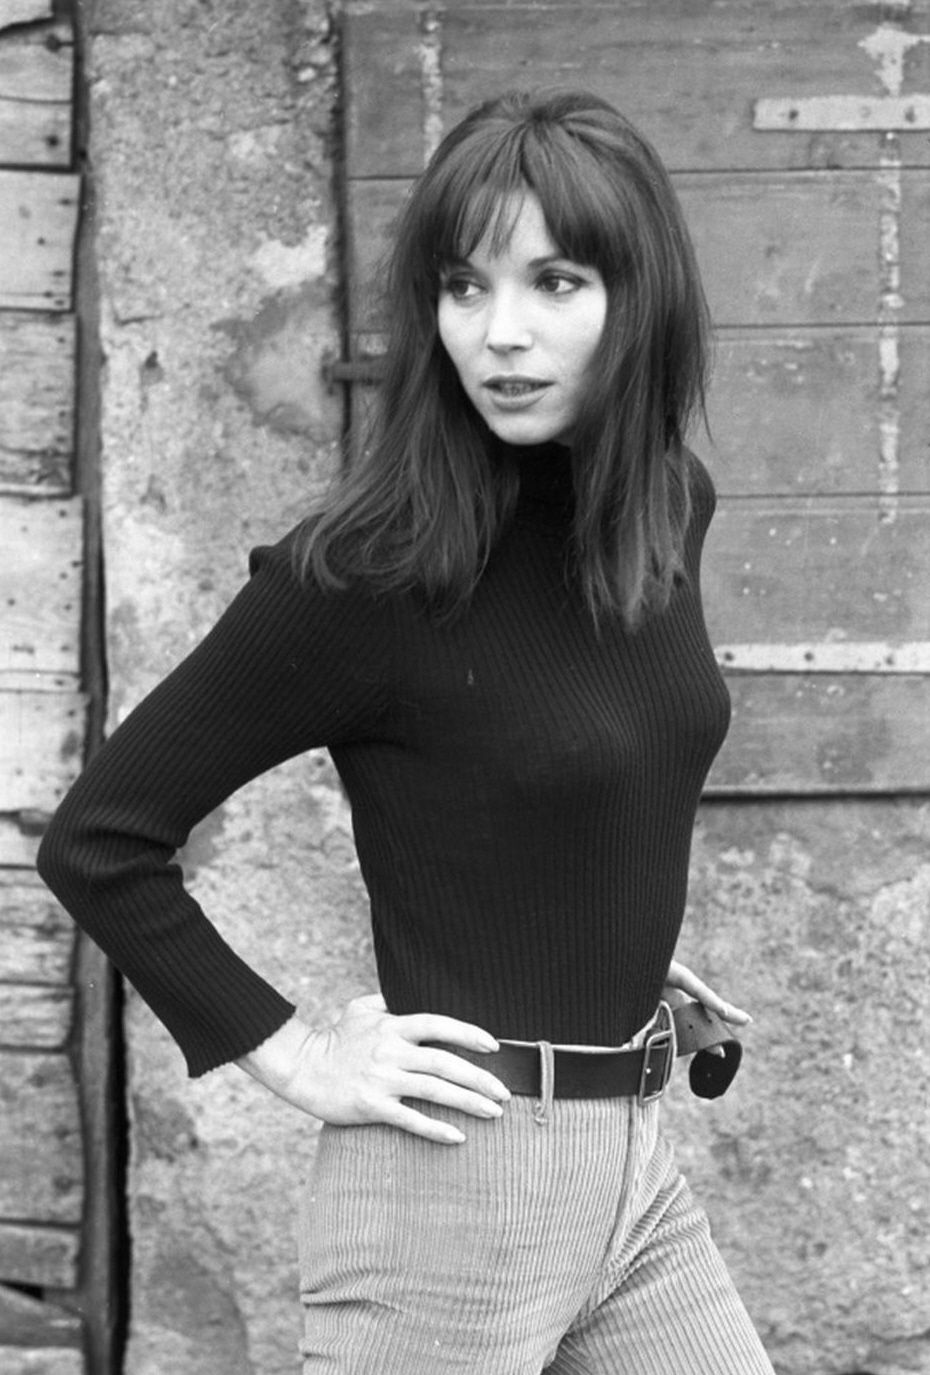 Elsa Martinelli (born 1932 or 1935, depending on different sources)